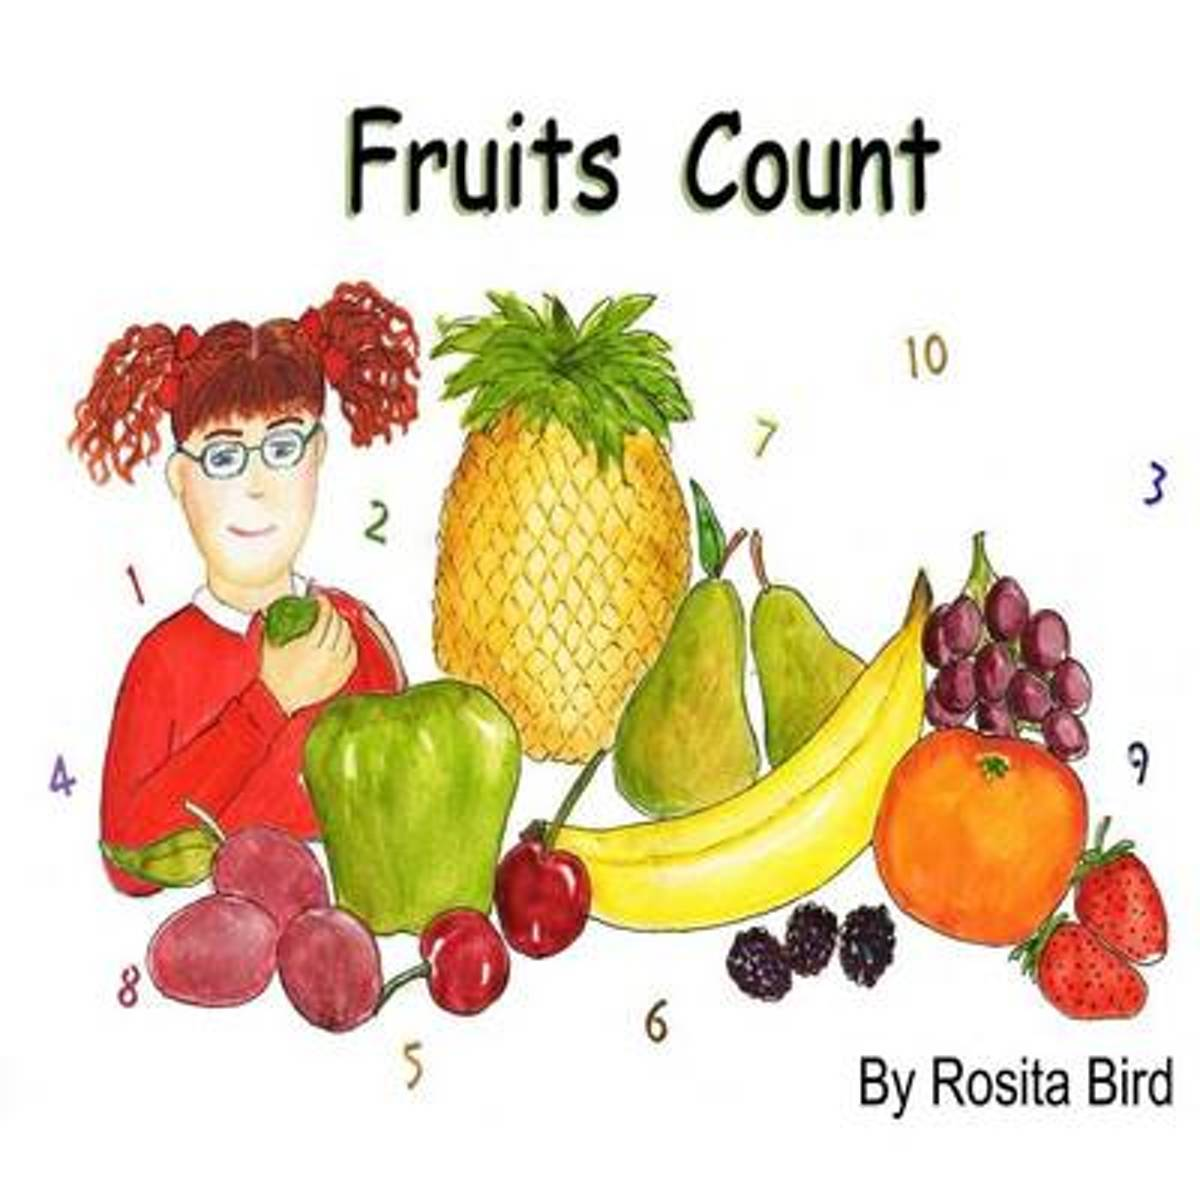 Fruits Count